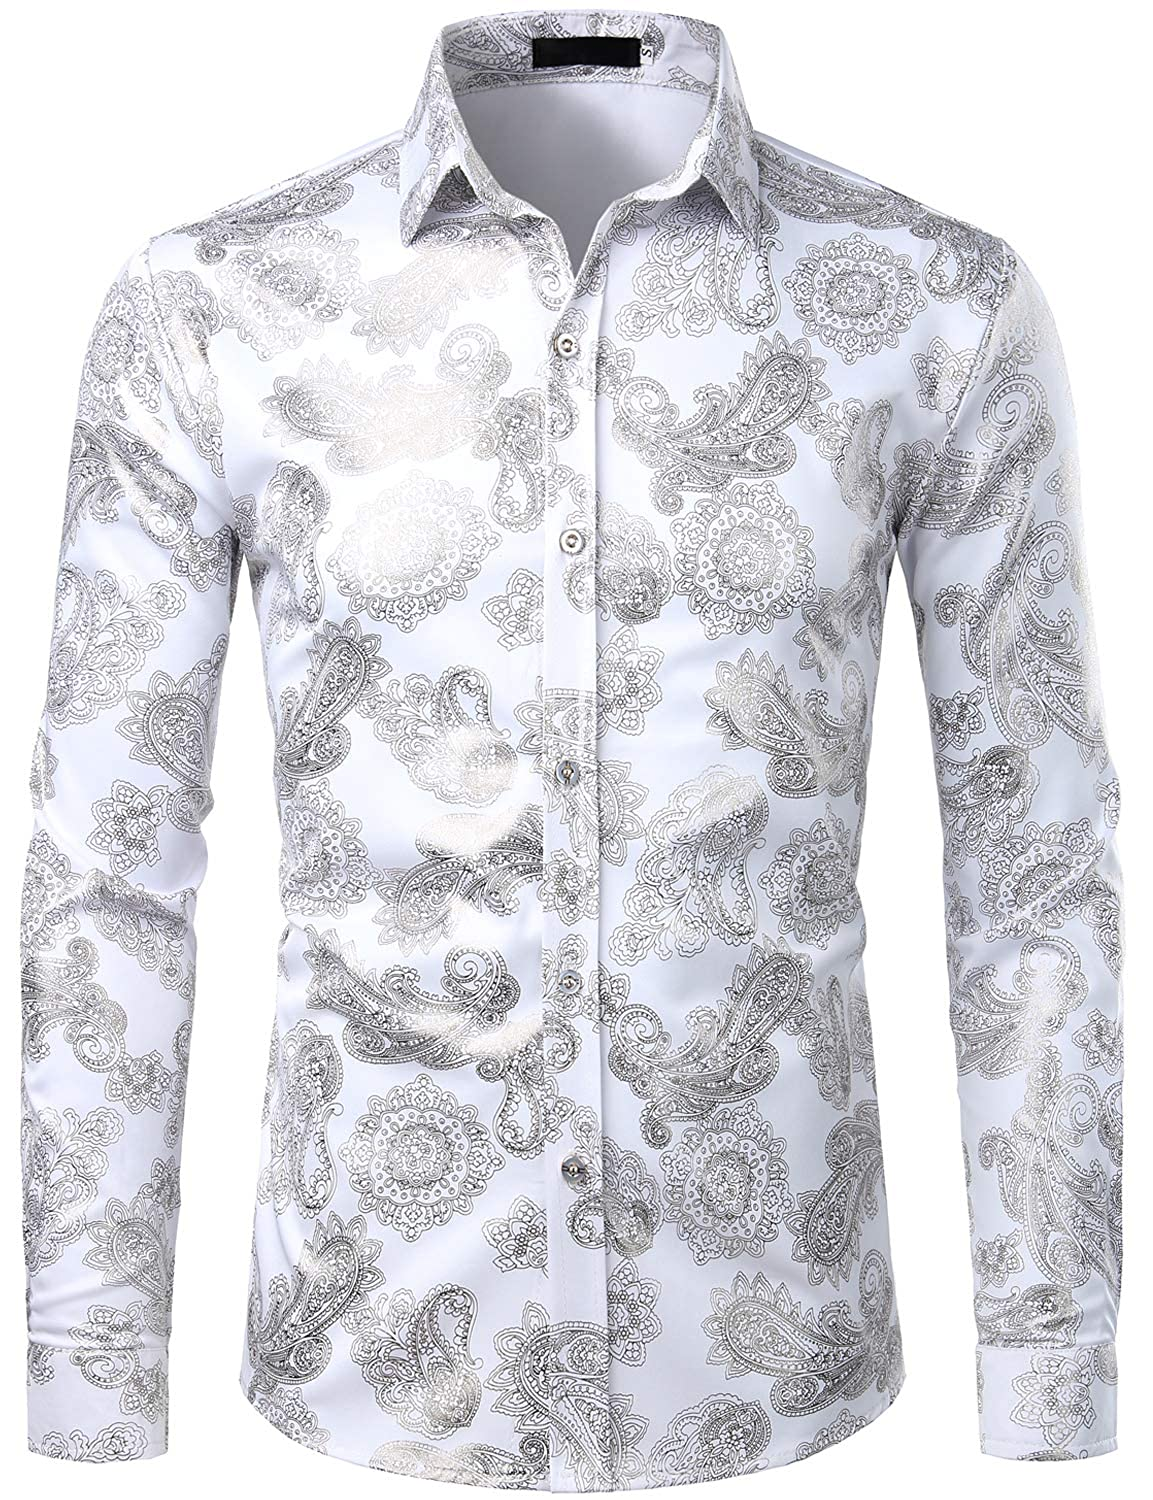 ZEROYAA Mens Hipster Paisley Shirt Luxury Design Slim Fit Long Sleeve Button Down Shirts Party Costume